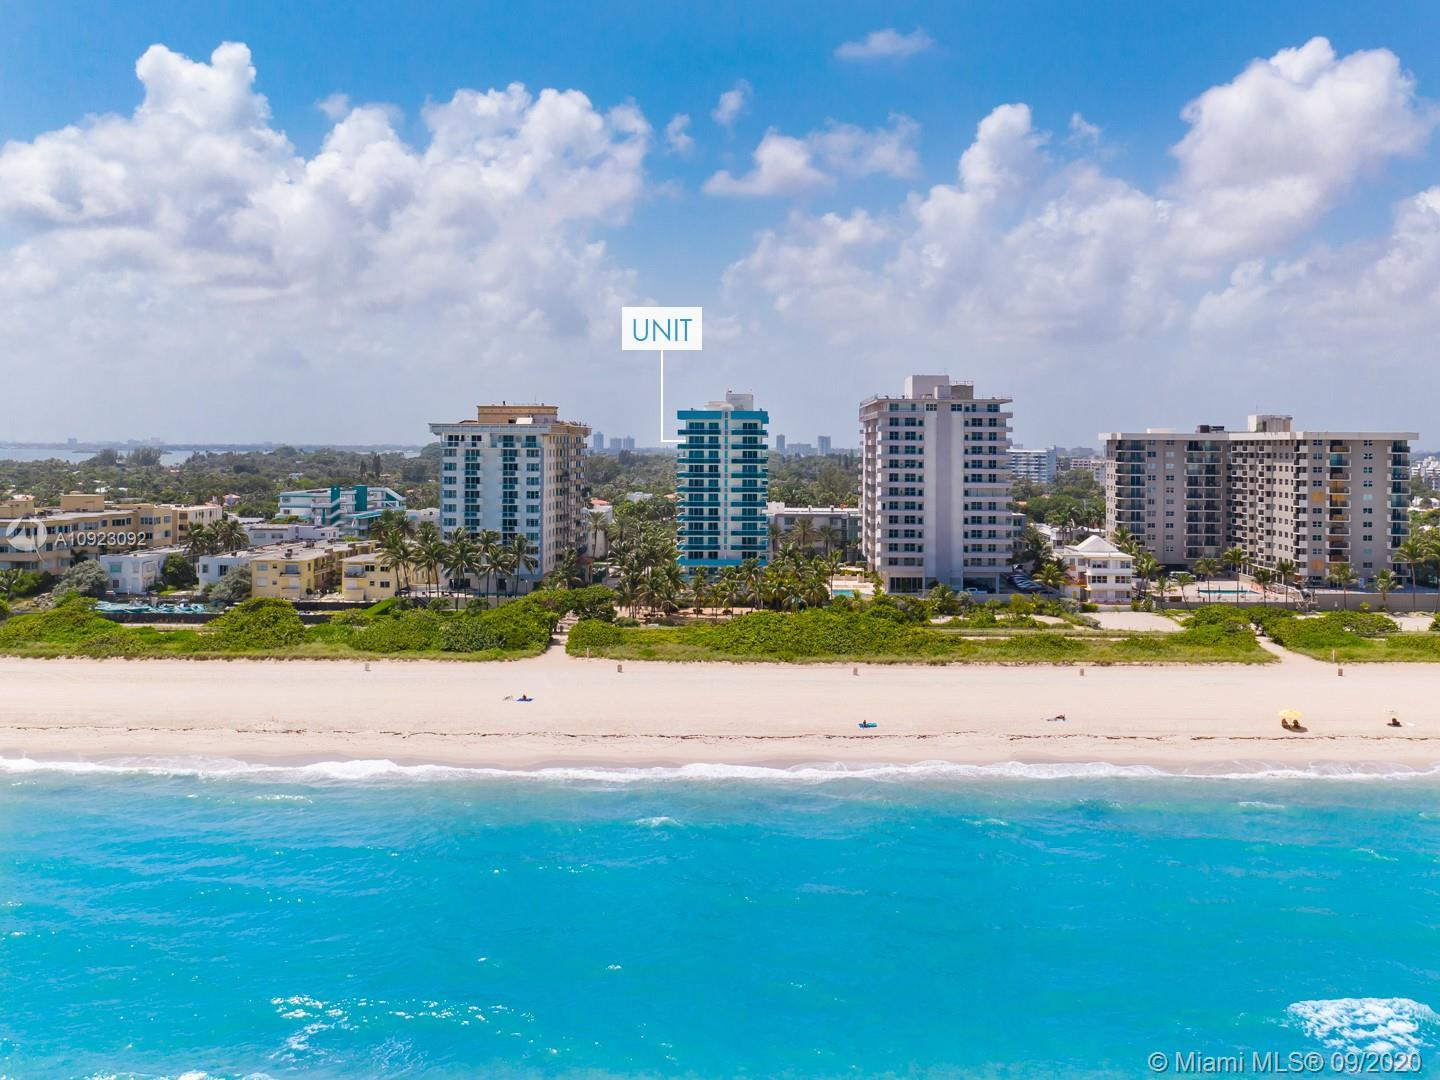 LOWER PENTHOUSE ! DIRECT Oceanfront views! A rare find 3 bedrooms 2 baths in Surfside! This is the l